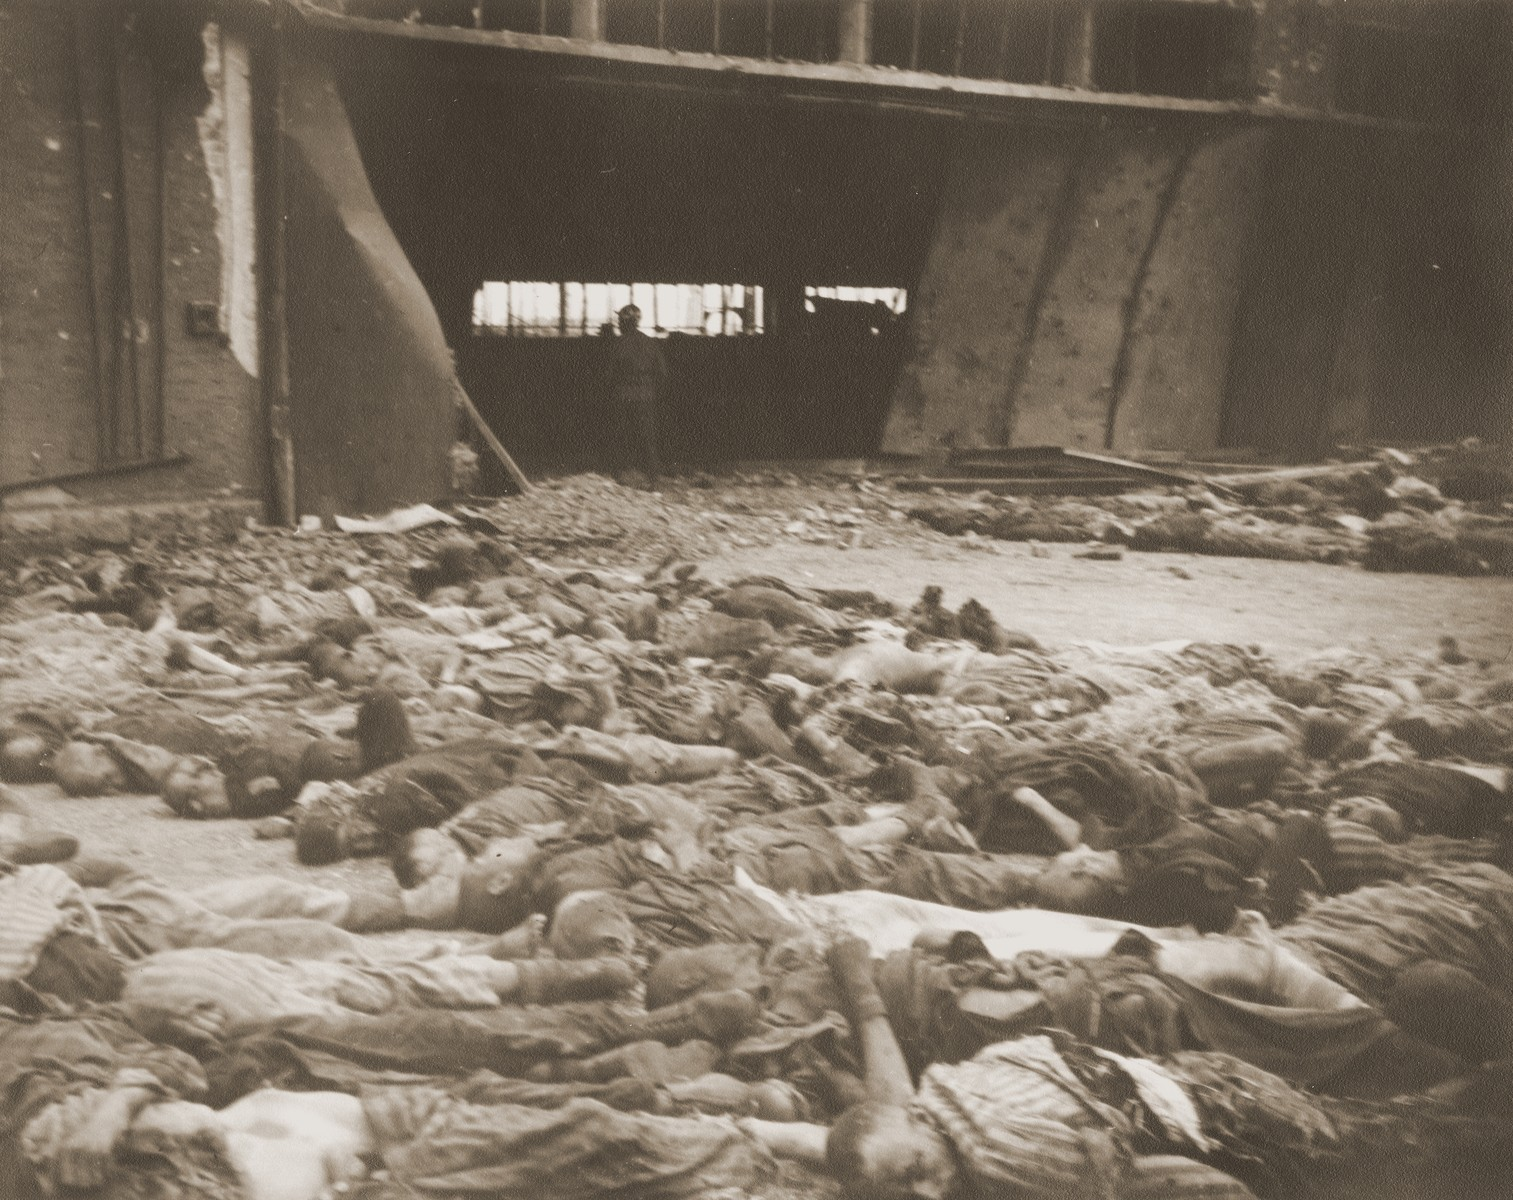 The bodies of prisoners killed in the Nordhausen concentration camp, which have been laid out in long rows outside the central barracks (Boelke Kaserne).